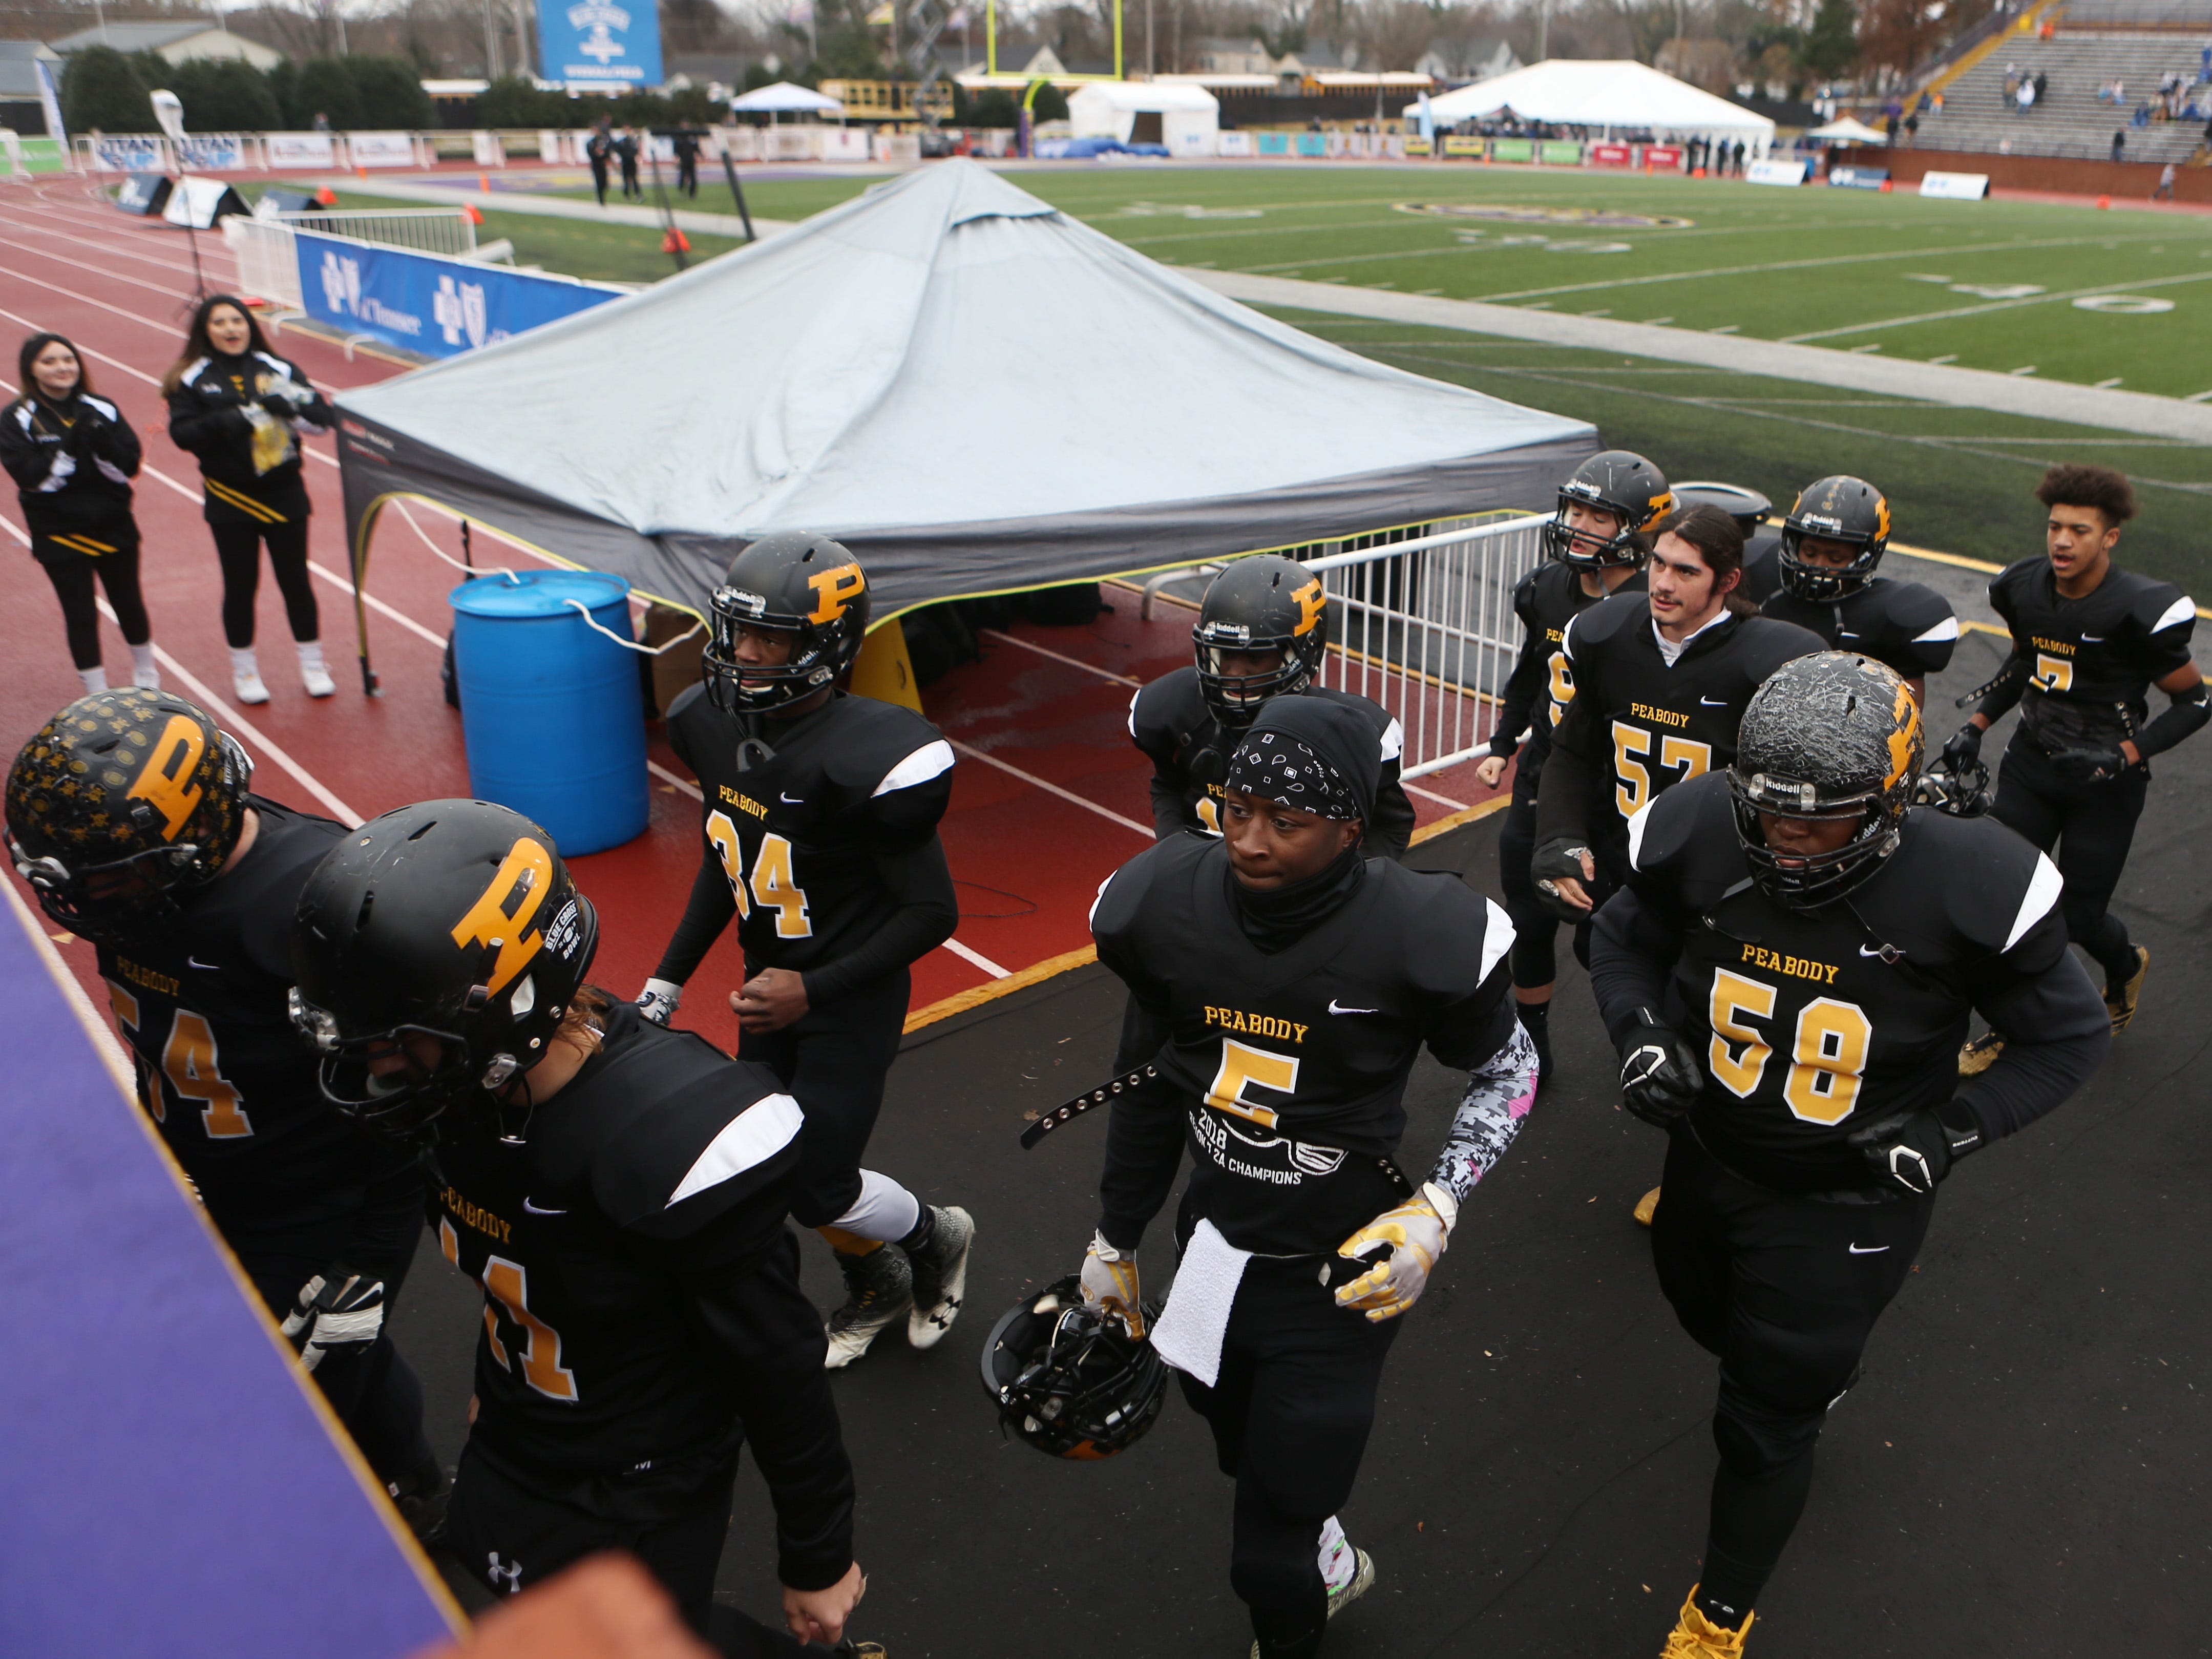 Peabody heads off the field before the Class 2A BlueCross Bowl state championship at Tennessee Tech's Tucker Stadium in Cookeville, Tenn., on Thursday, Nov. 29, 2018.